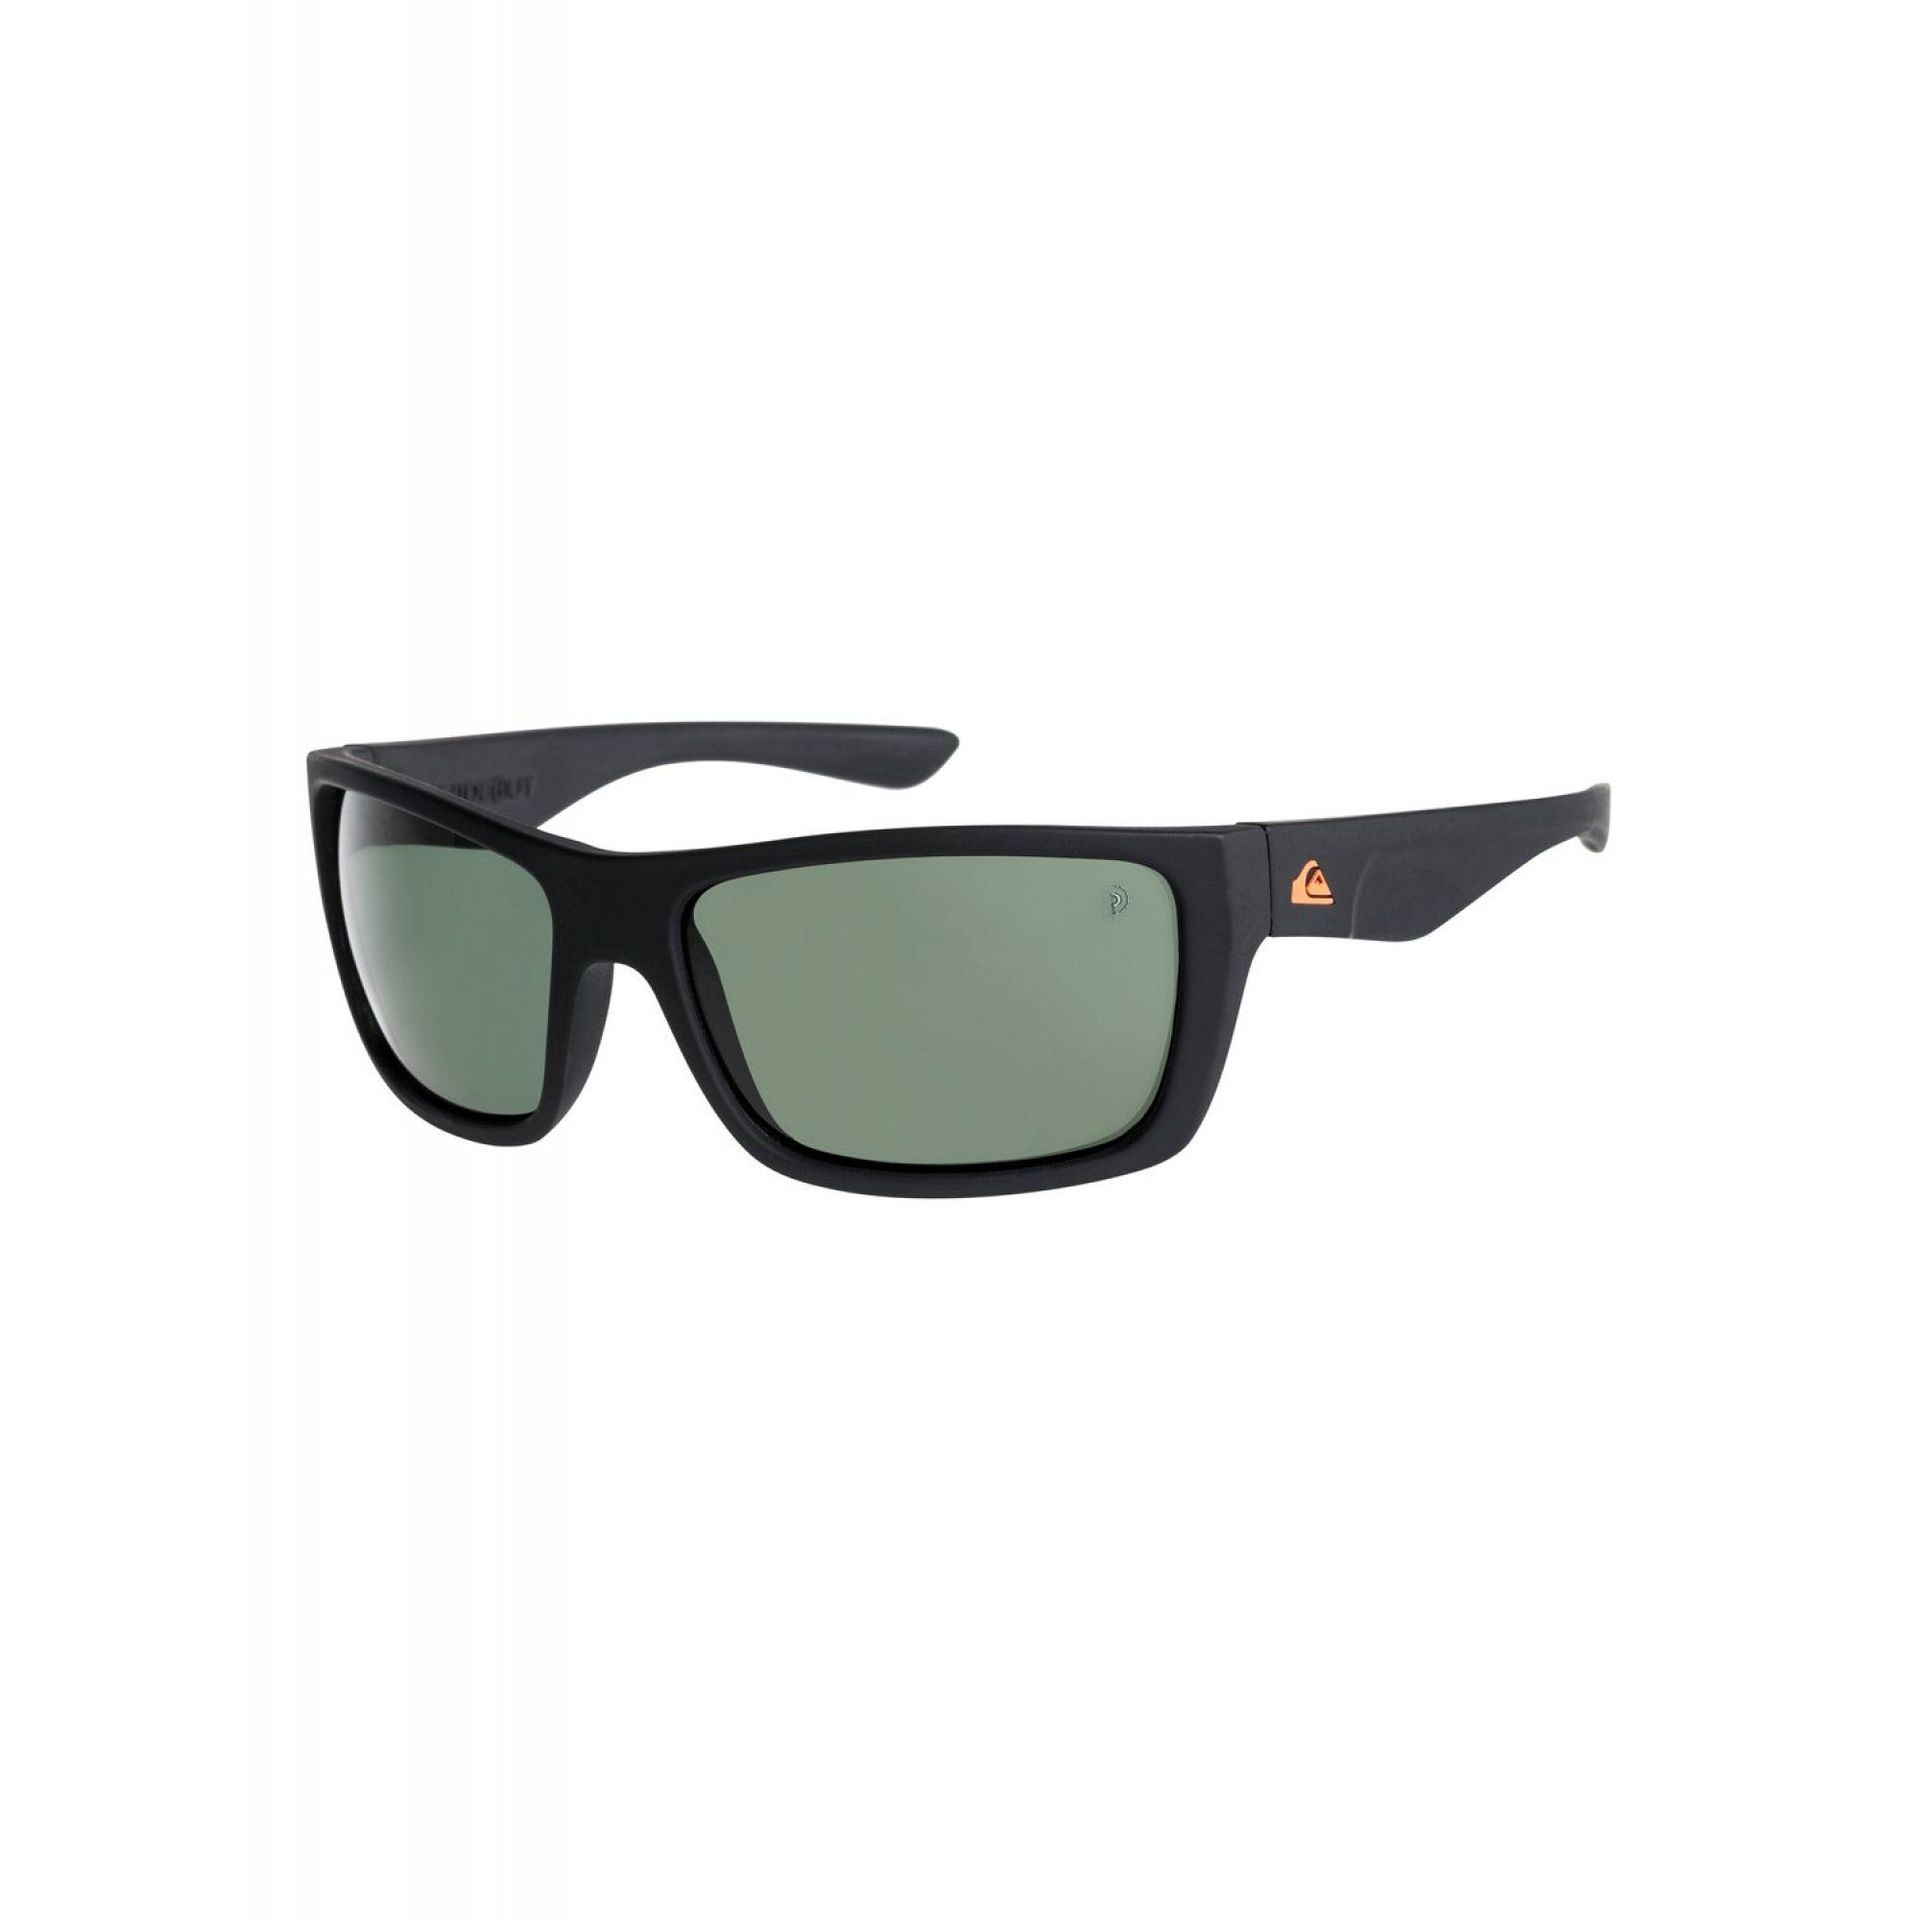 OKULARY QUIKSILVER HIDEOUT POLARIZED FLOATABLE XKGG 1